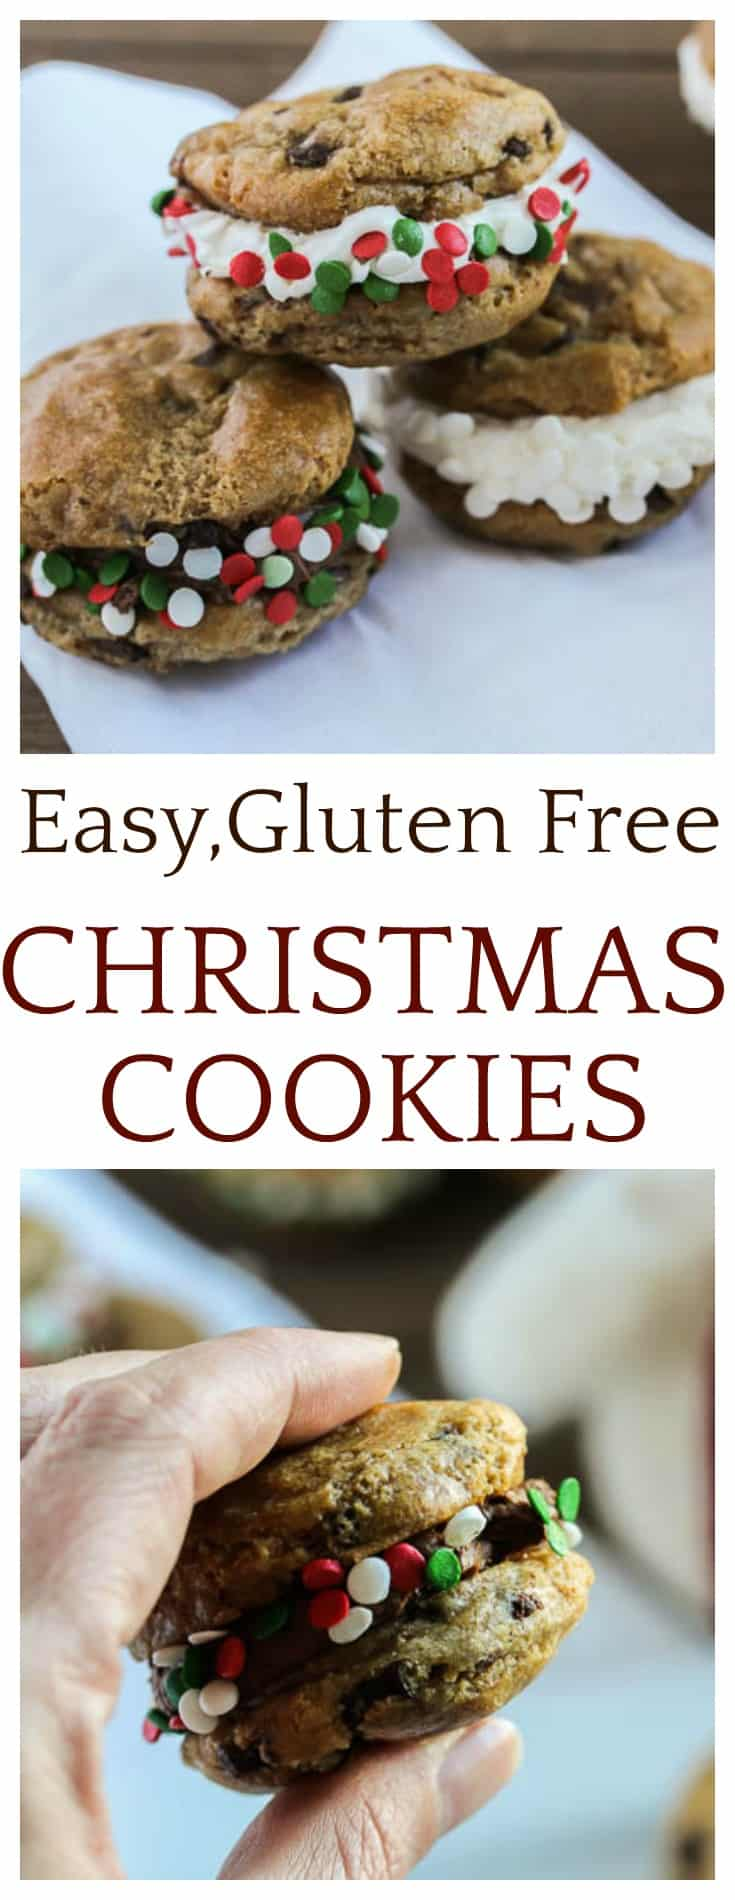 Keep the holidays as stress -free as possible with these Easy Gluten Free Christmas Cookies! | #ad #immaculatebaking #christmascookies #cookies #easyrecipes @immaculatebakes